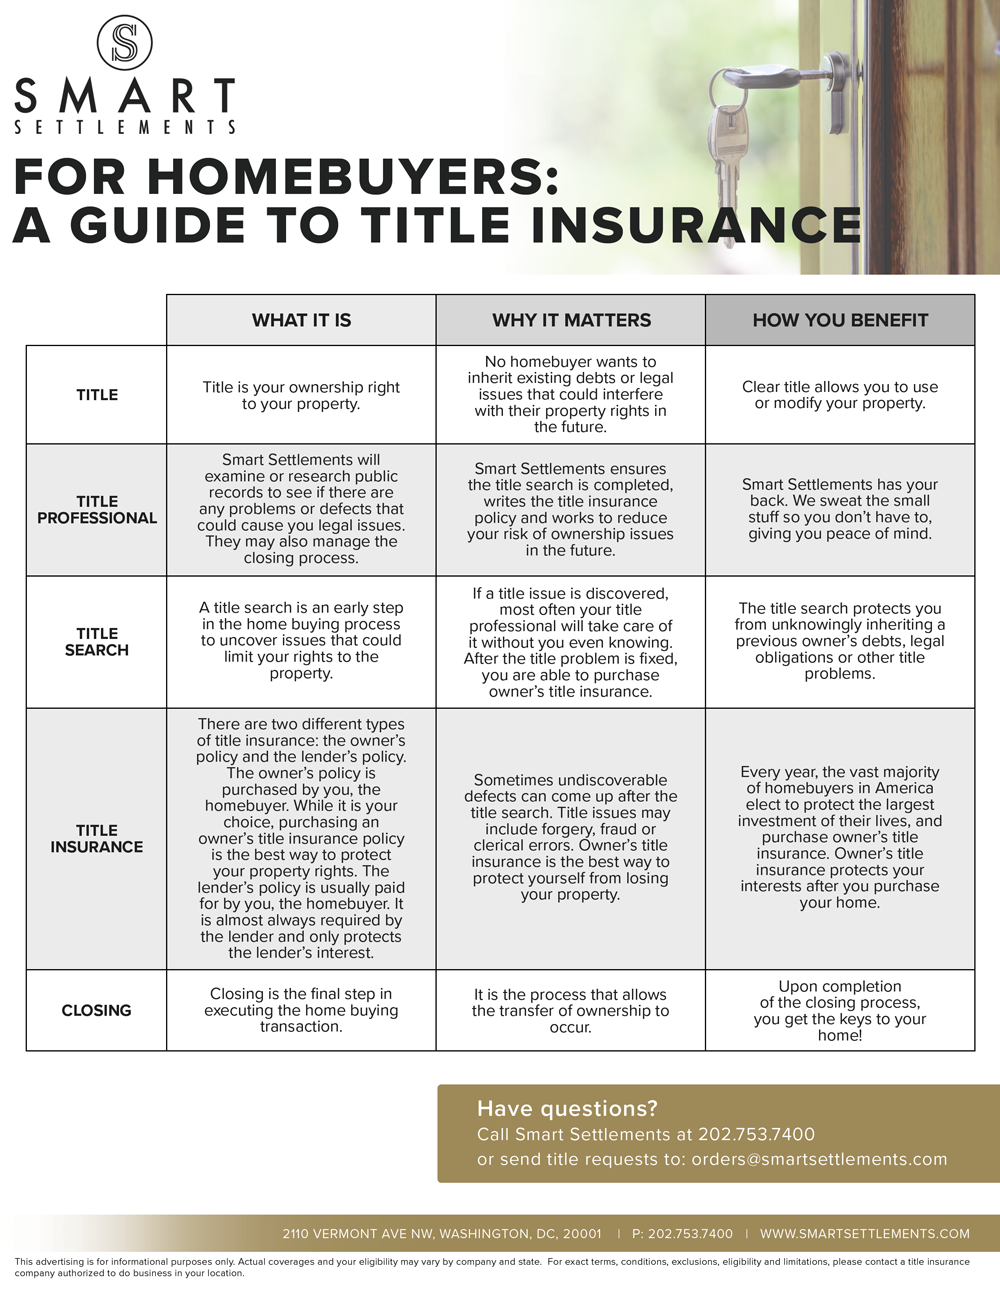 smart-settlements.homebuyers-guide.png